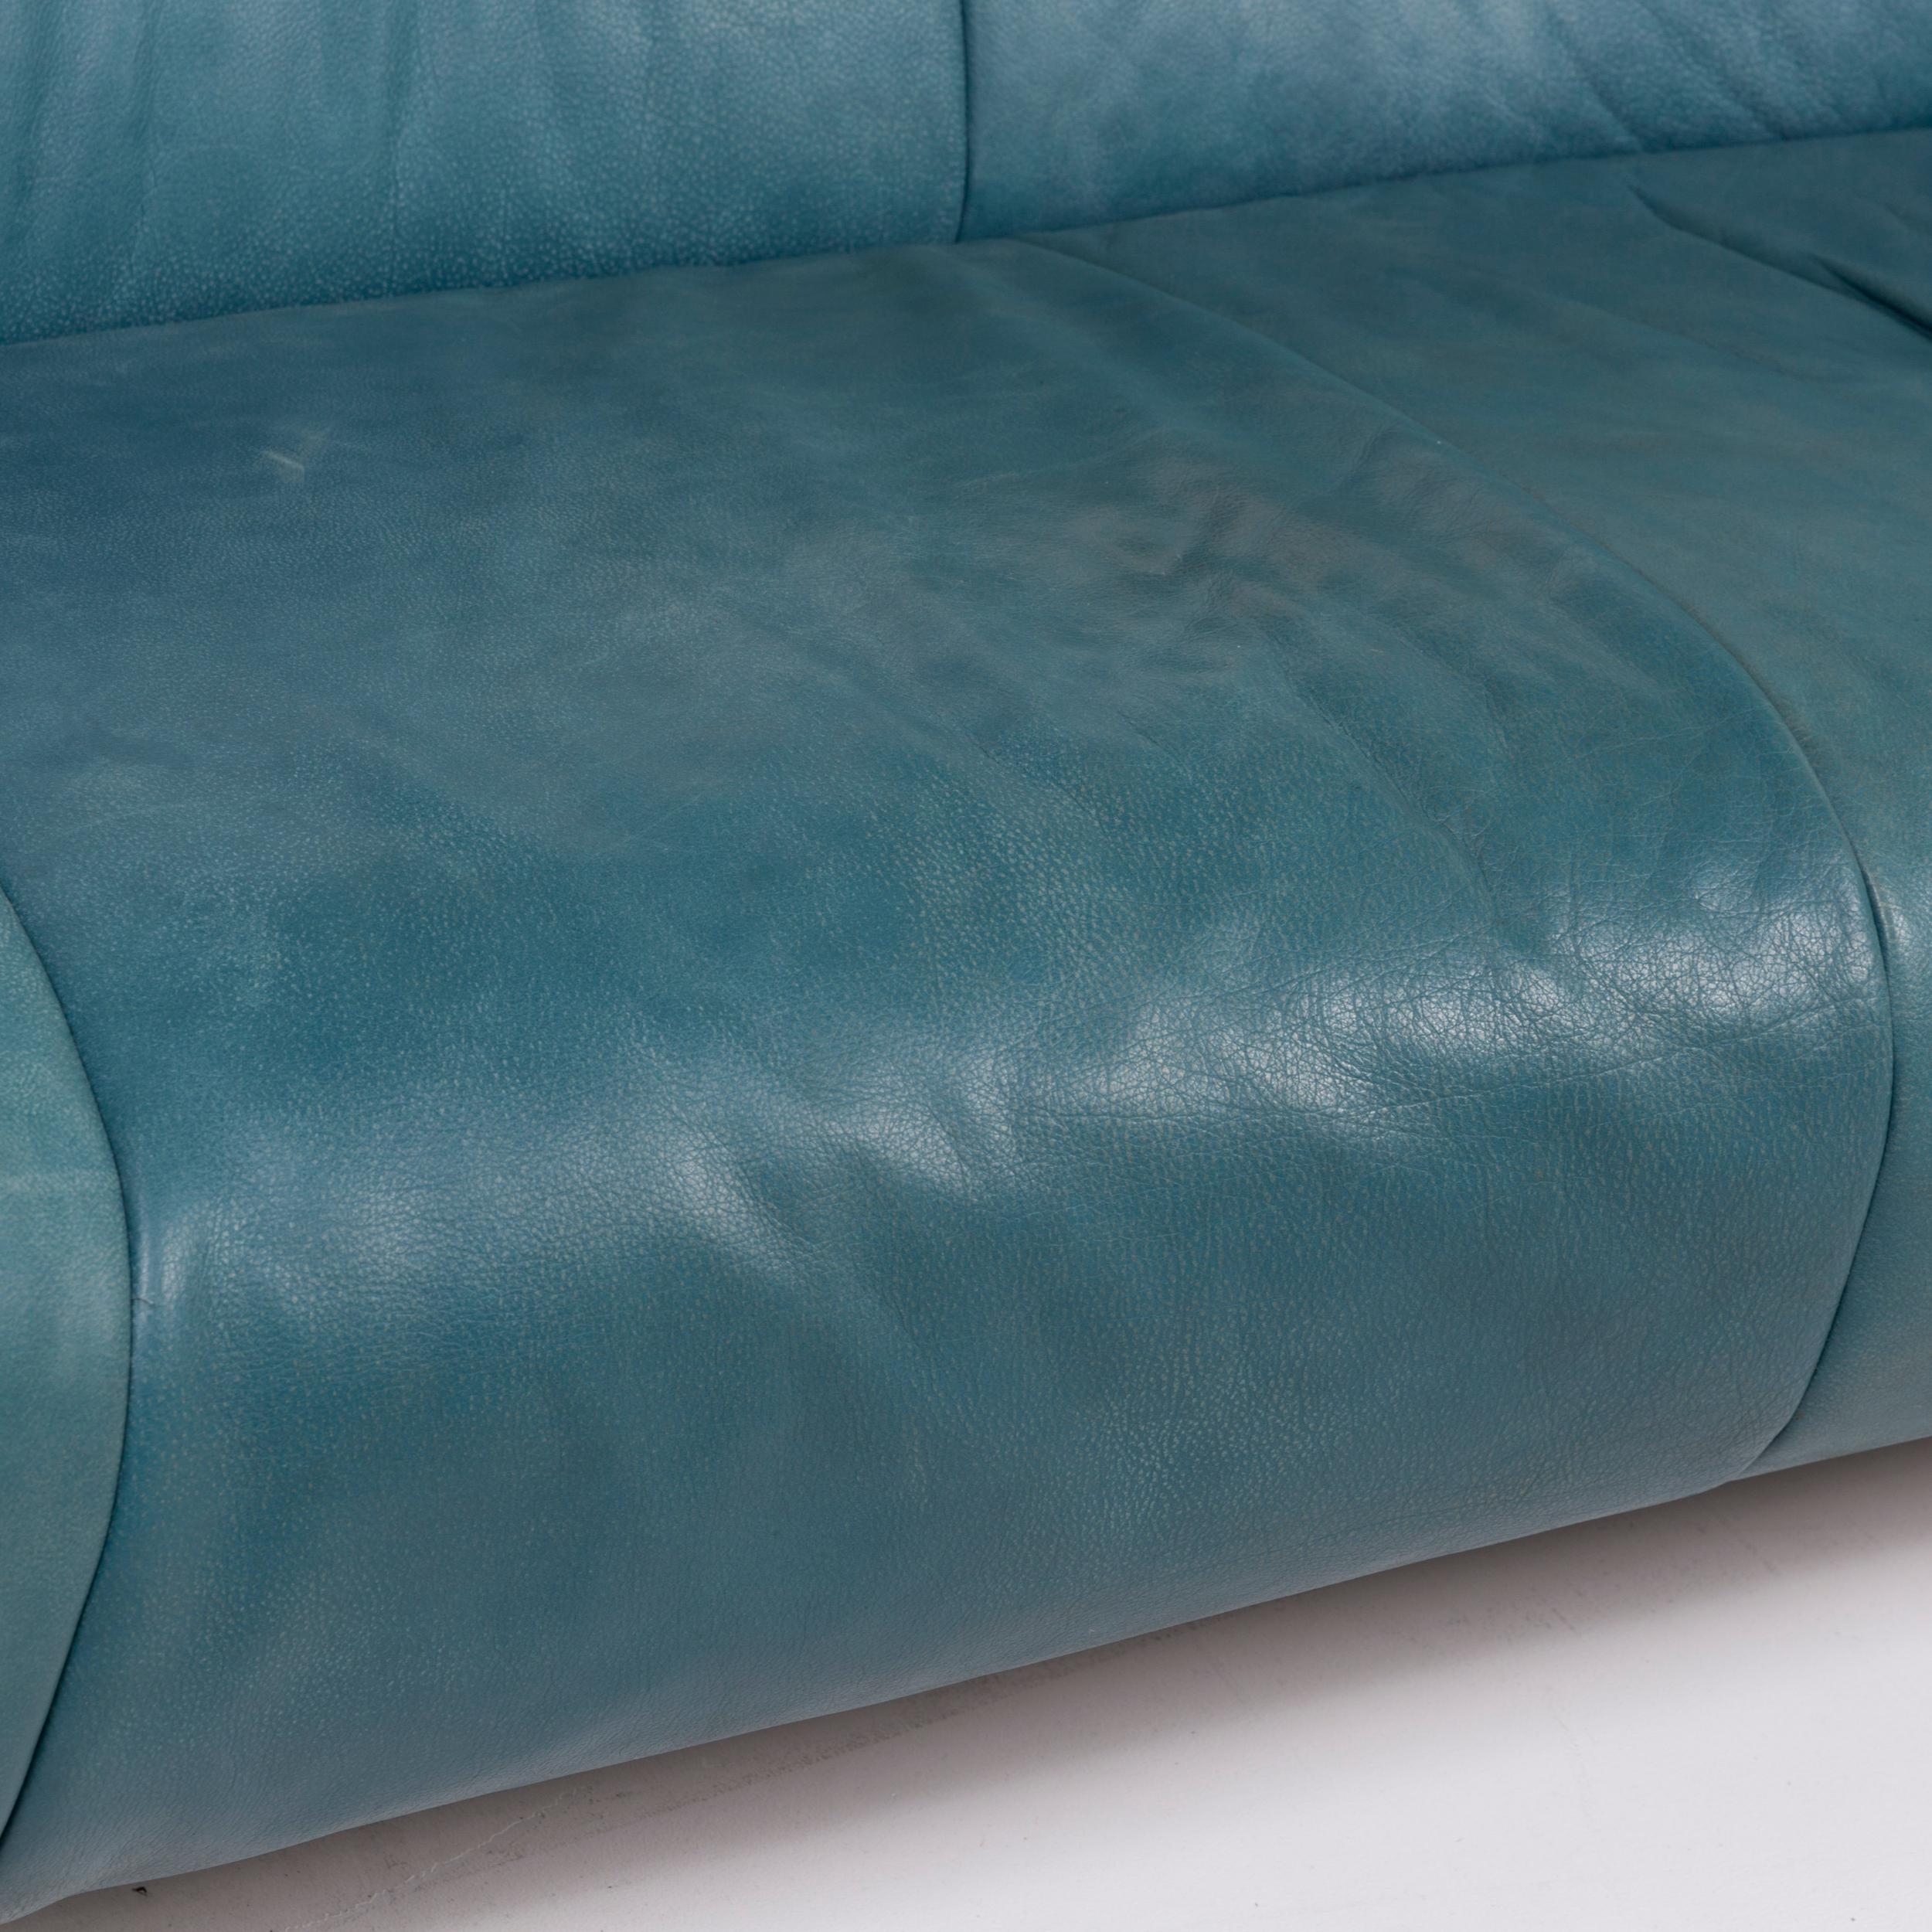 - Koinor Leather Sofa Set Turquoise Blue Green 1 Two-Seat 1 Armchair